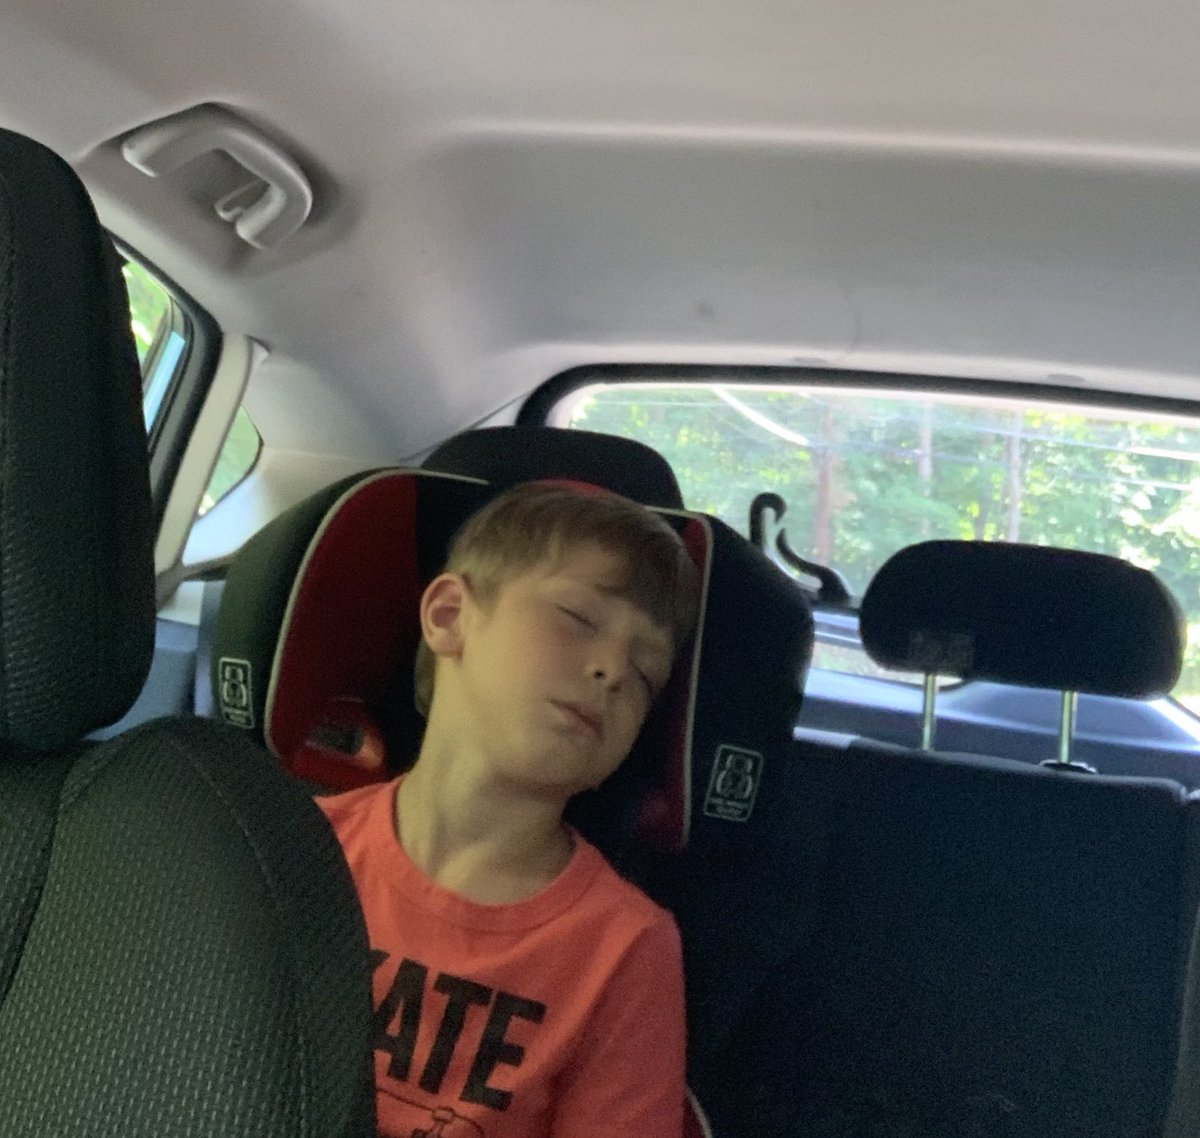 Once again Mimi exhausted my grandson after 2 night sleepover. #family @CnickelsonHp @ManeatGrass @LindaLeeKing @lagaviota521 @suziday123 @Ophelia160 @TipsOnActing @EngRoseBoutique @AnneAnd59185576 @Dytig @BestEverYou @ellamayblue @confessions_cup<br>http://pic.twitter.com/qbnLjcNQTj